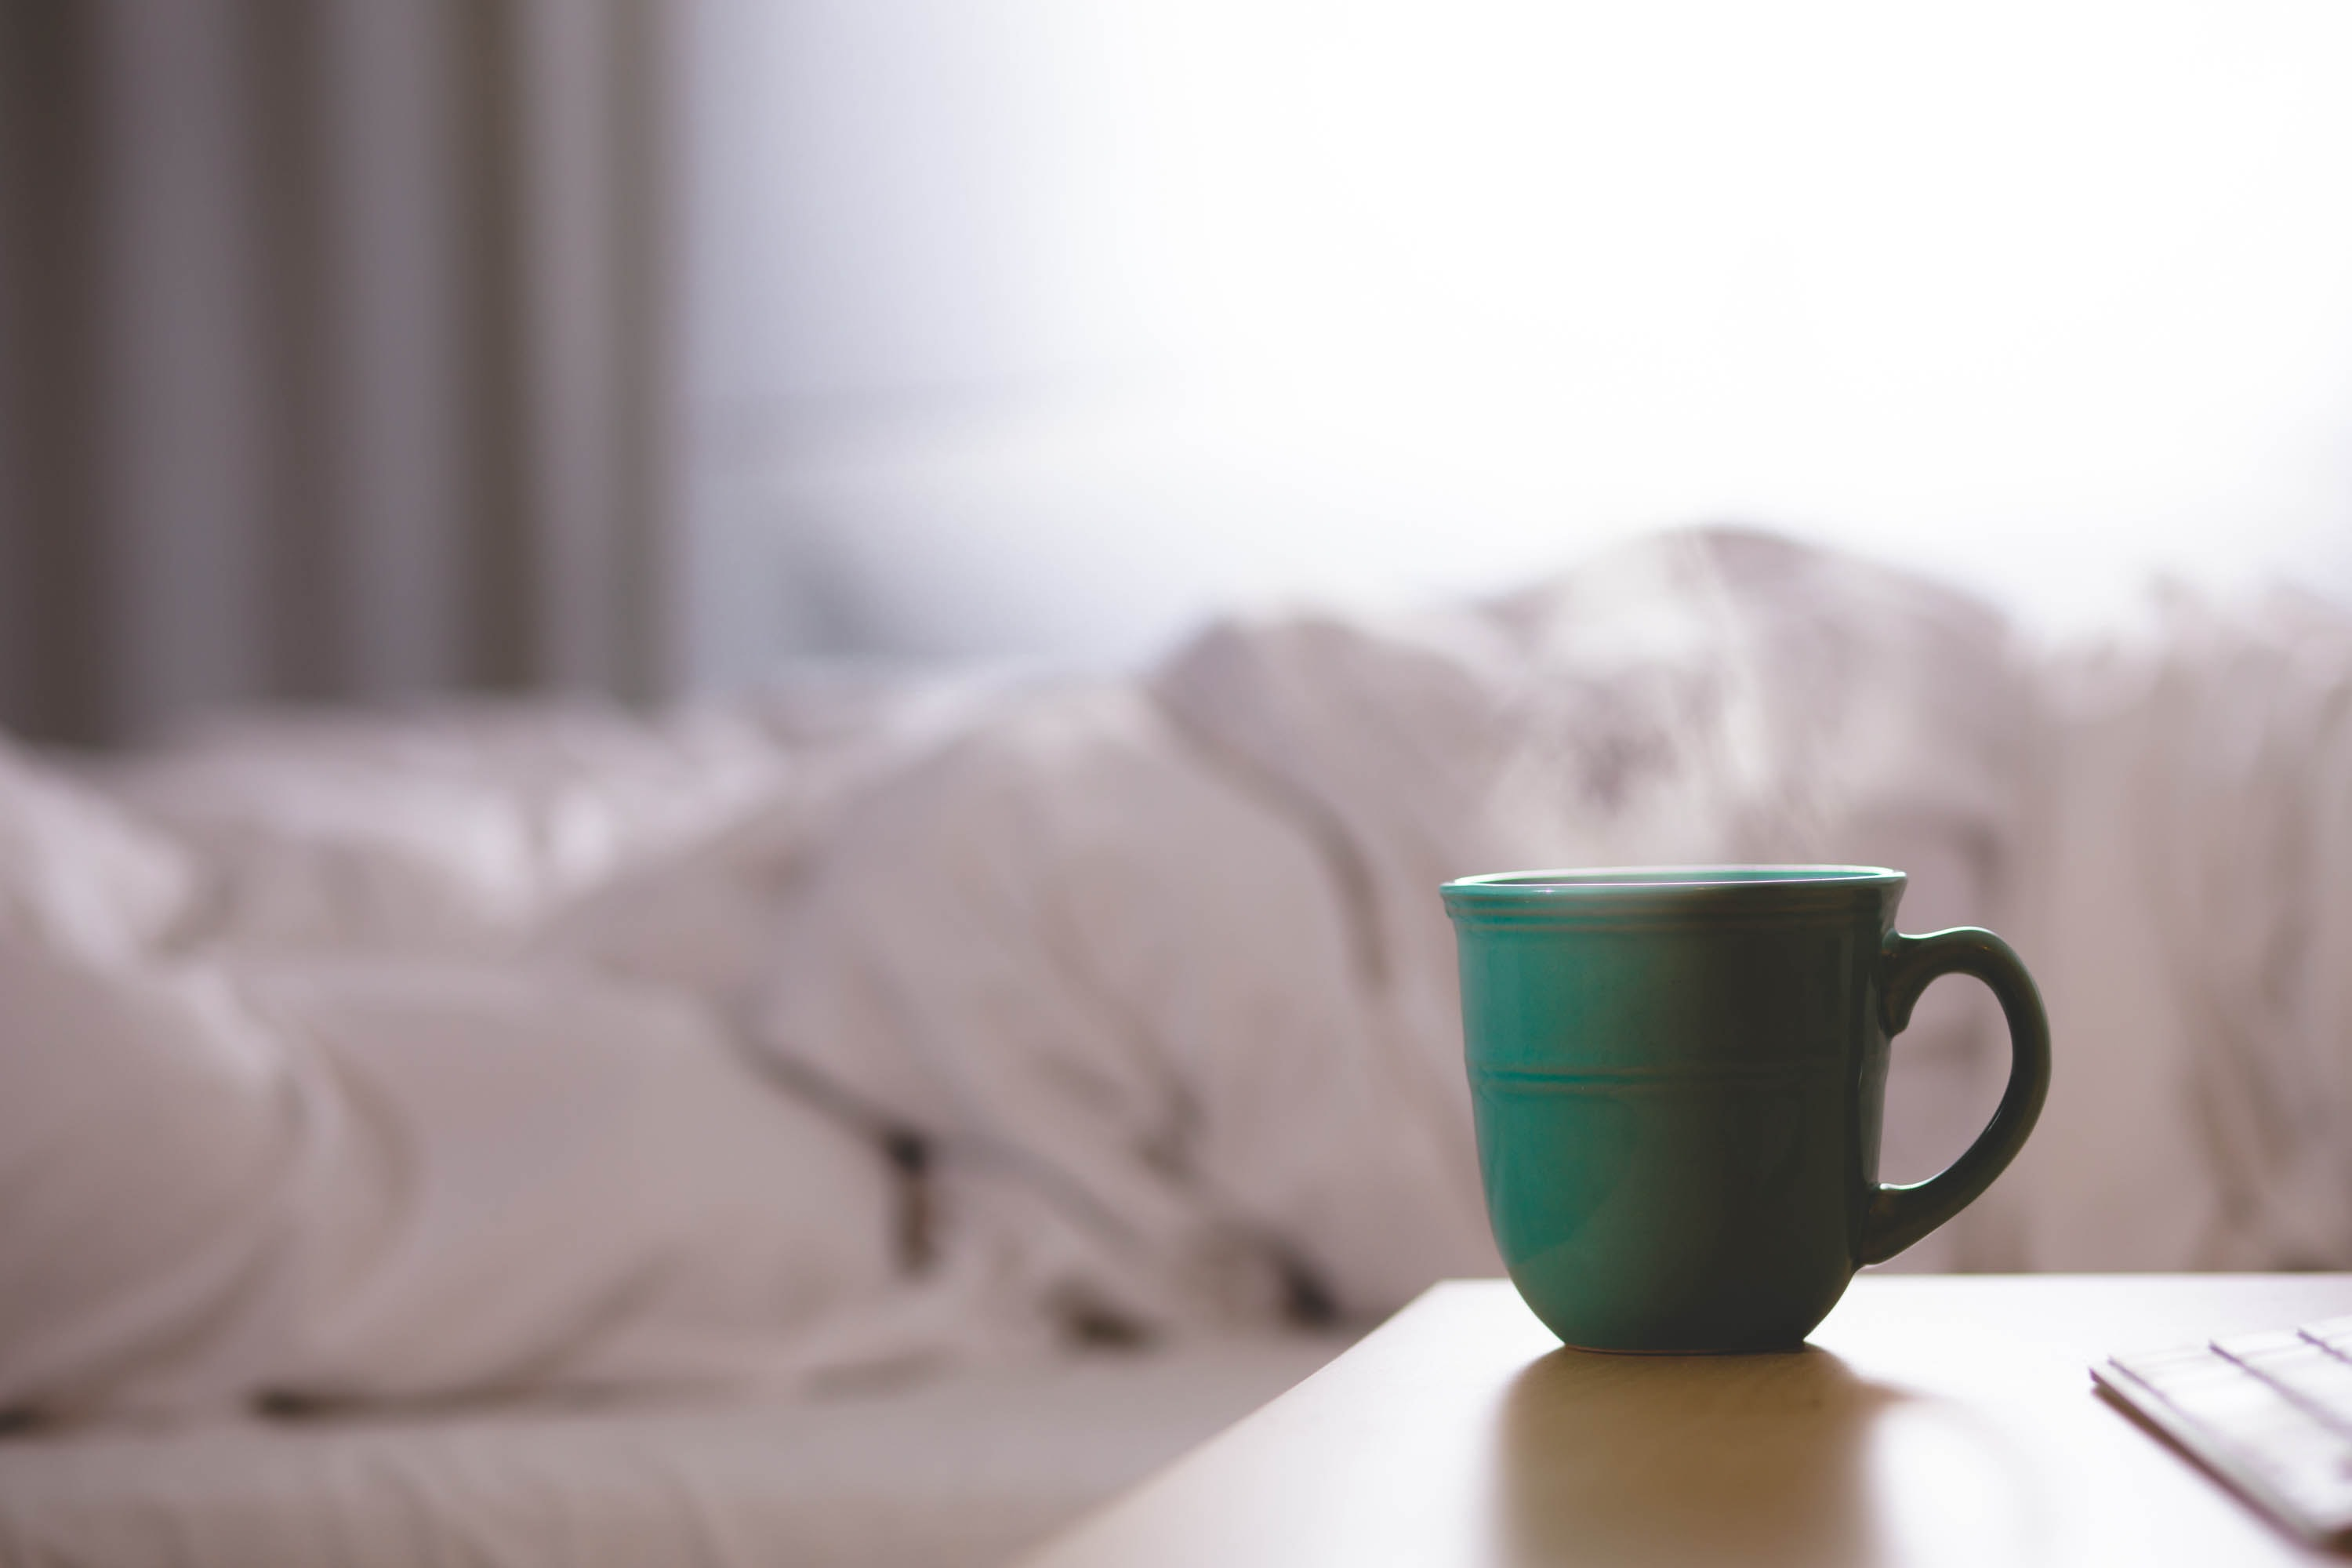 Green steaming teacup on bedside table with big white comforter on bed in background